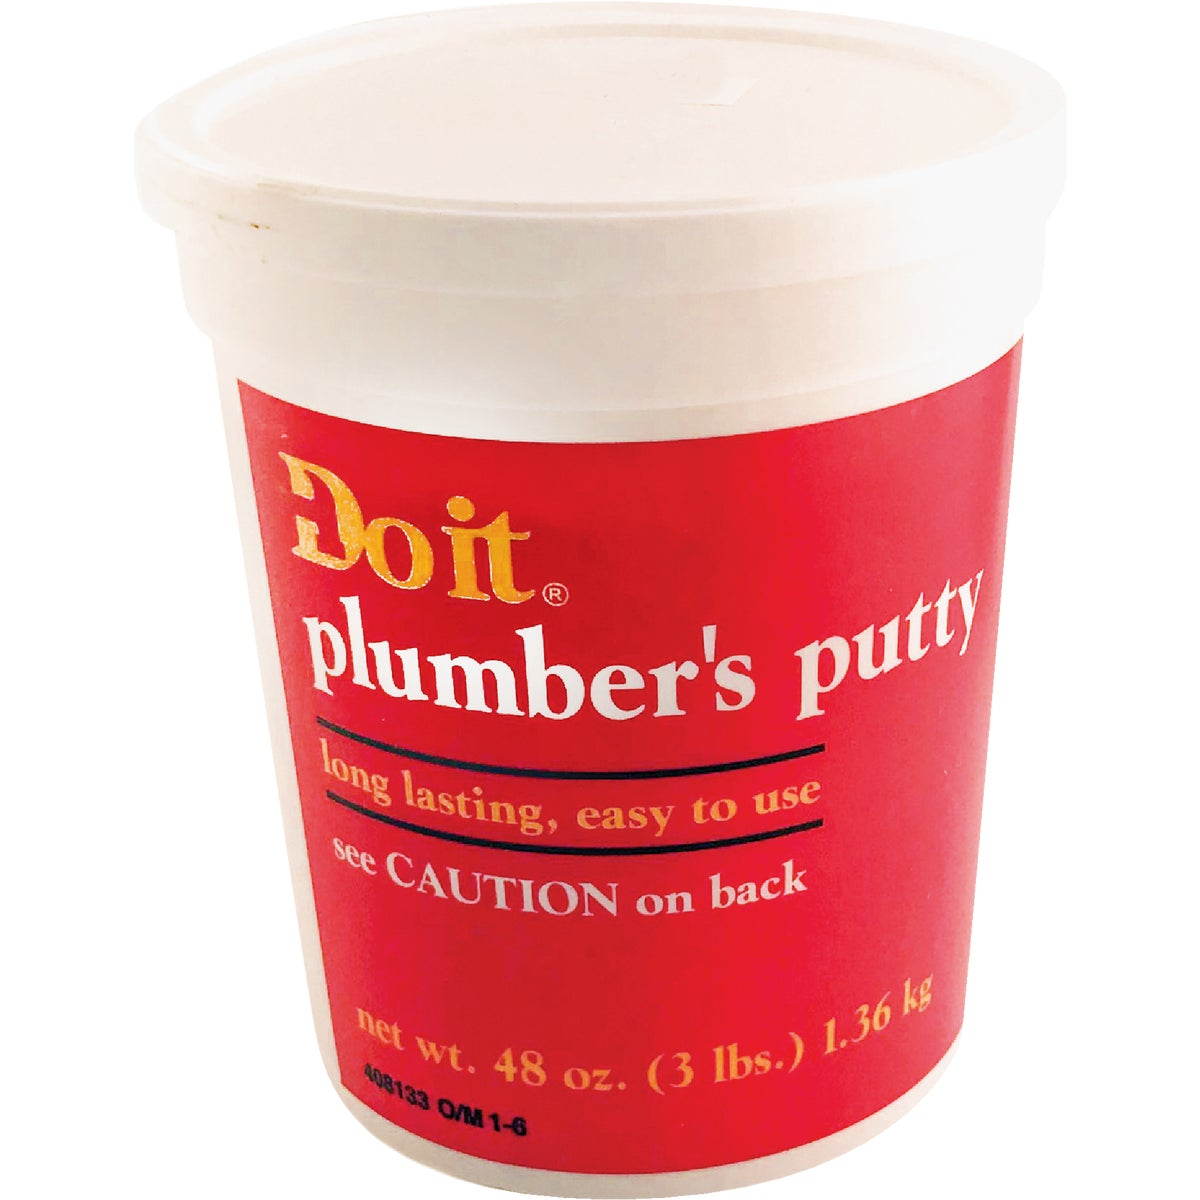 3LB PLUMBERS PUTTY - 043057 by Wm H Harvey Co